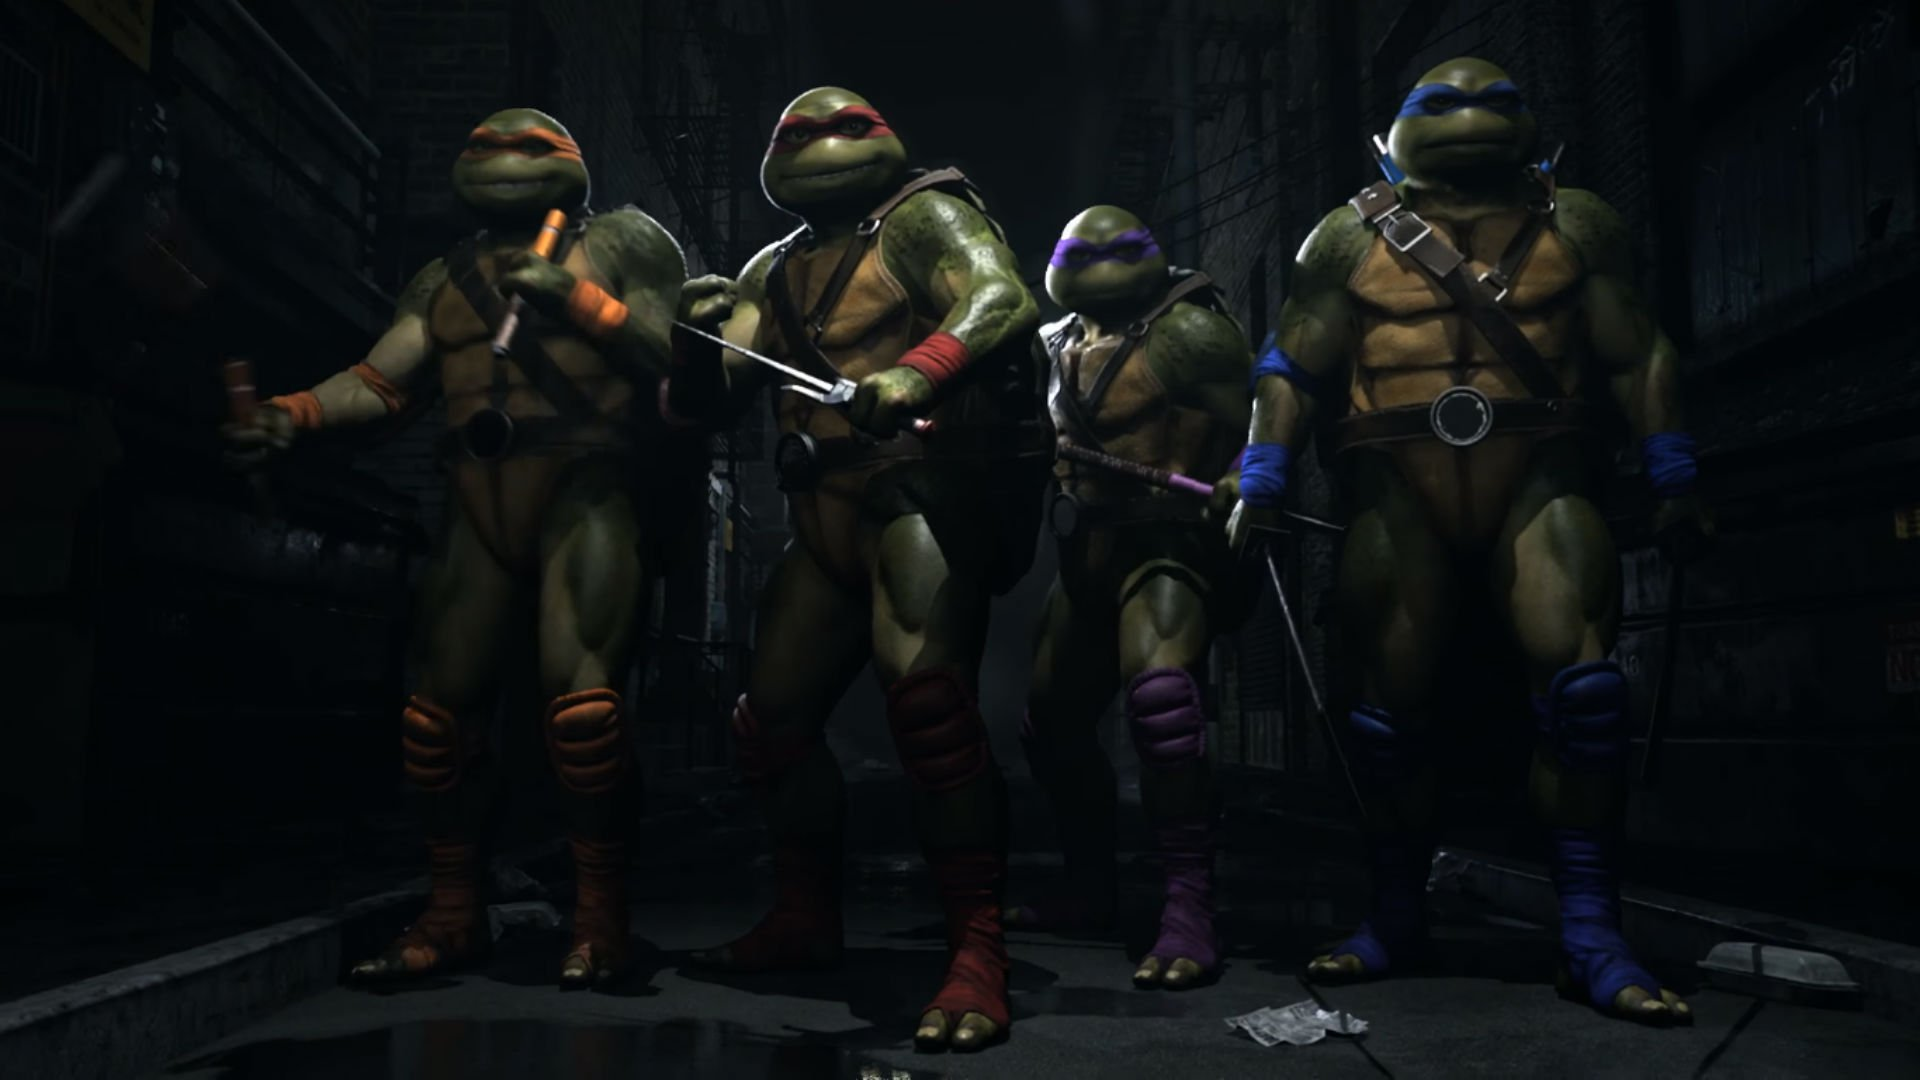 The Atom, Enchantress, and the Teenage Mutant Ninja Turtles are coming to Injustice 2 screenshot